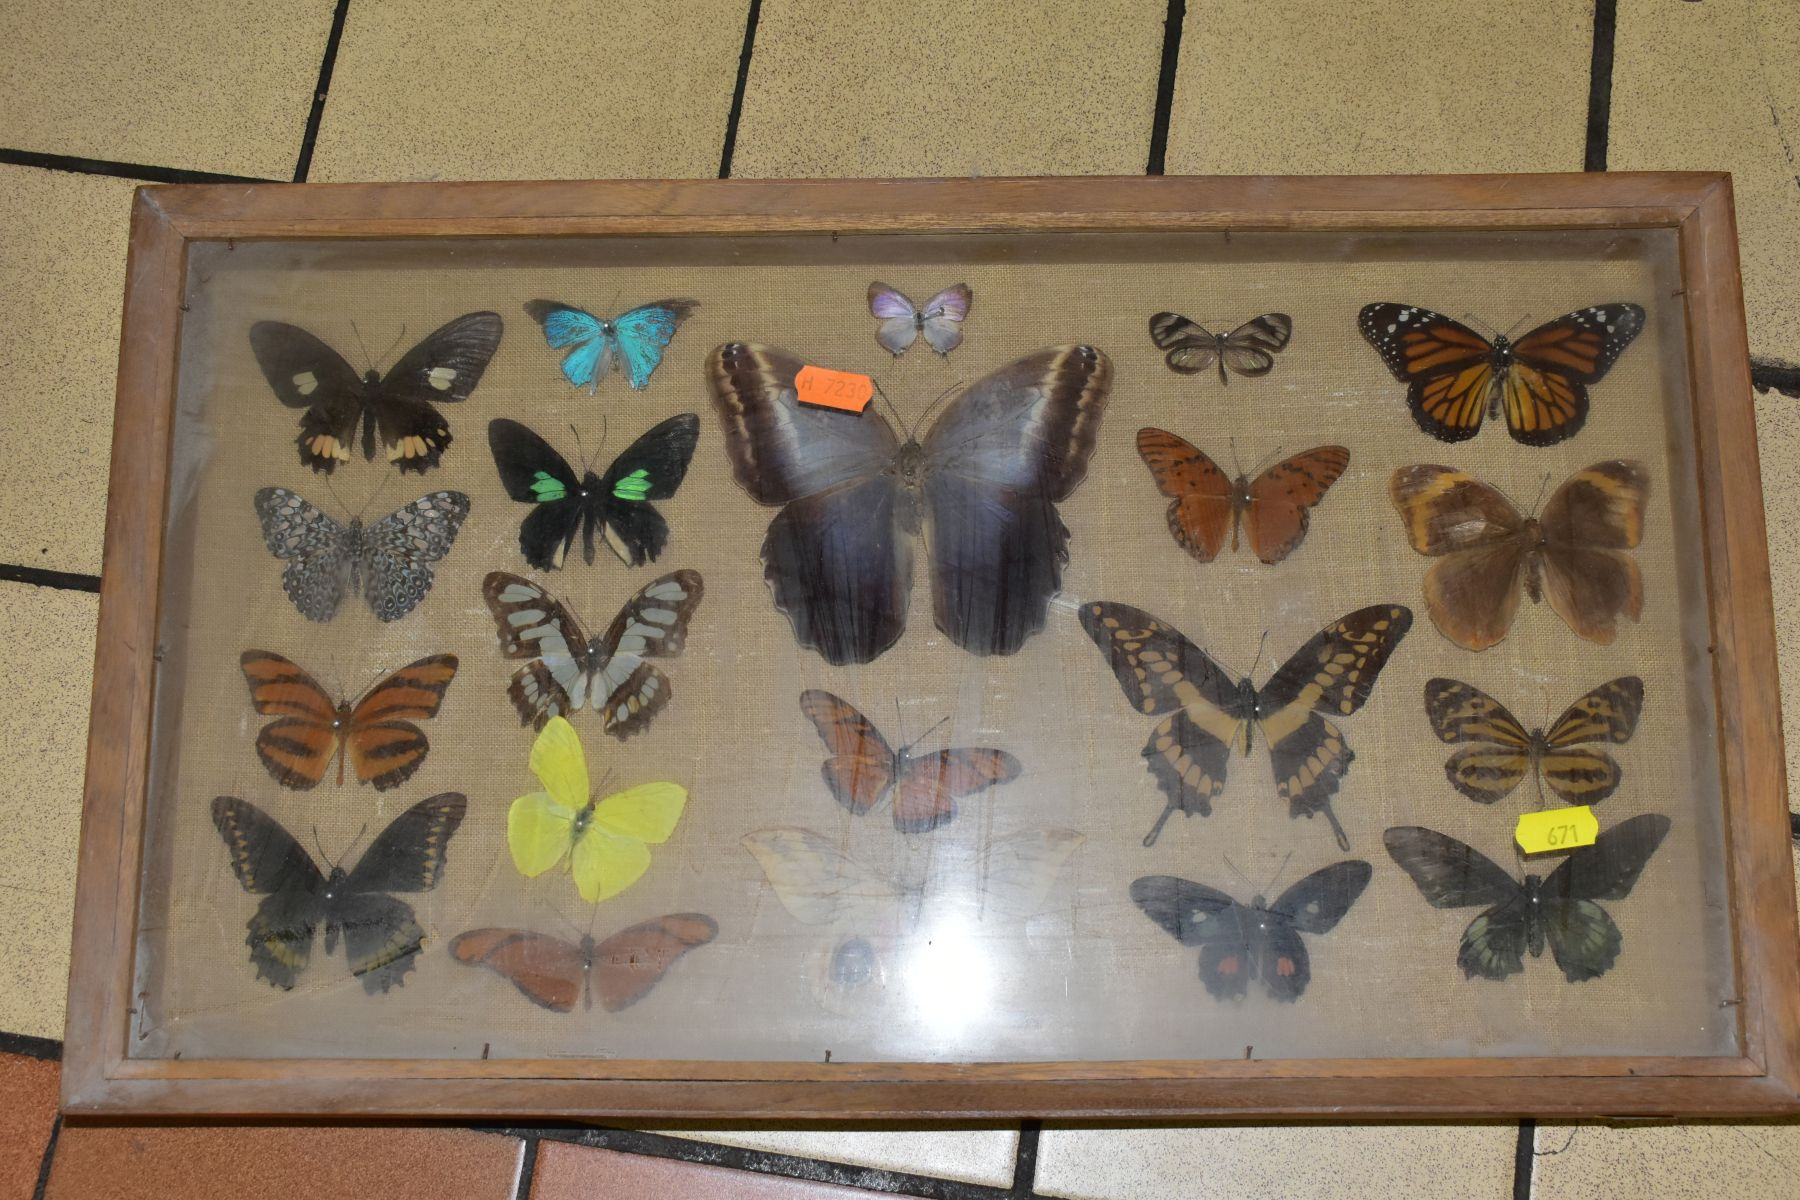 THREE DISPLAY CASES CONTAINING BUTTERFLIES AND MOTH SPECIMENS, together with four circular framed - Image 7 of 10